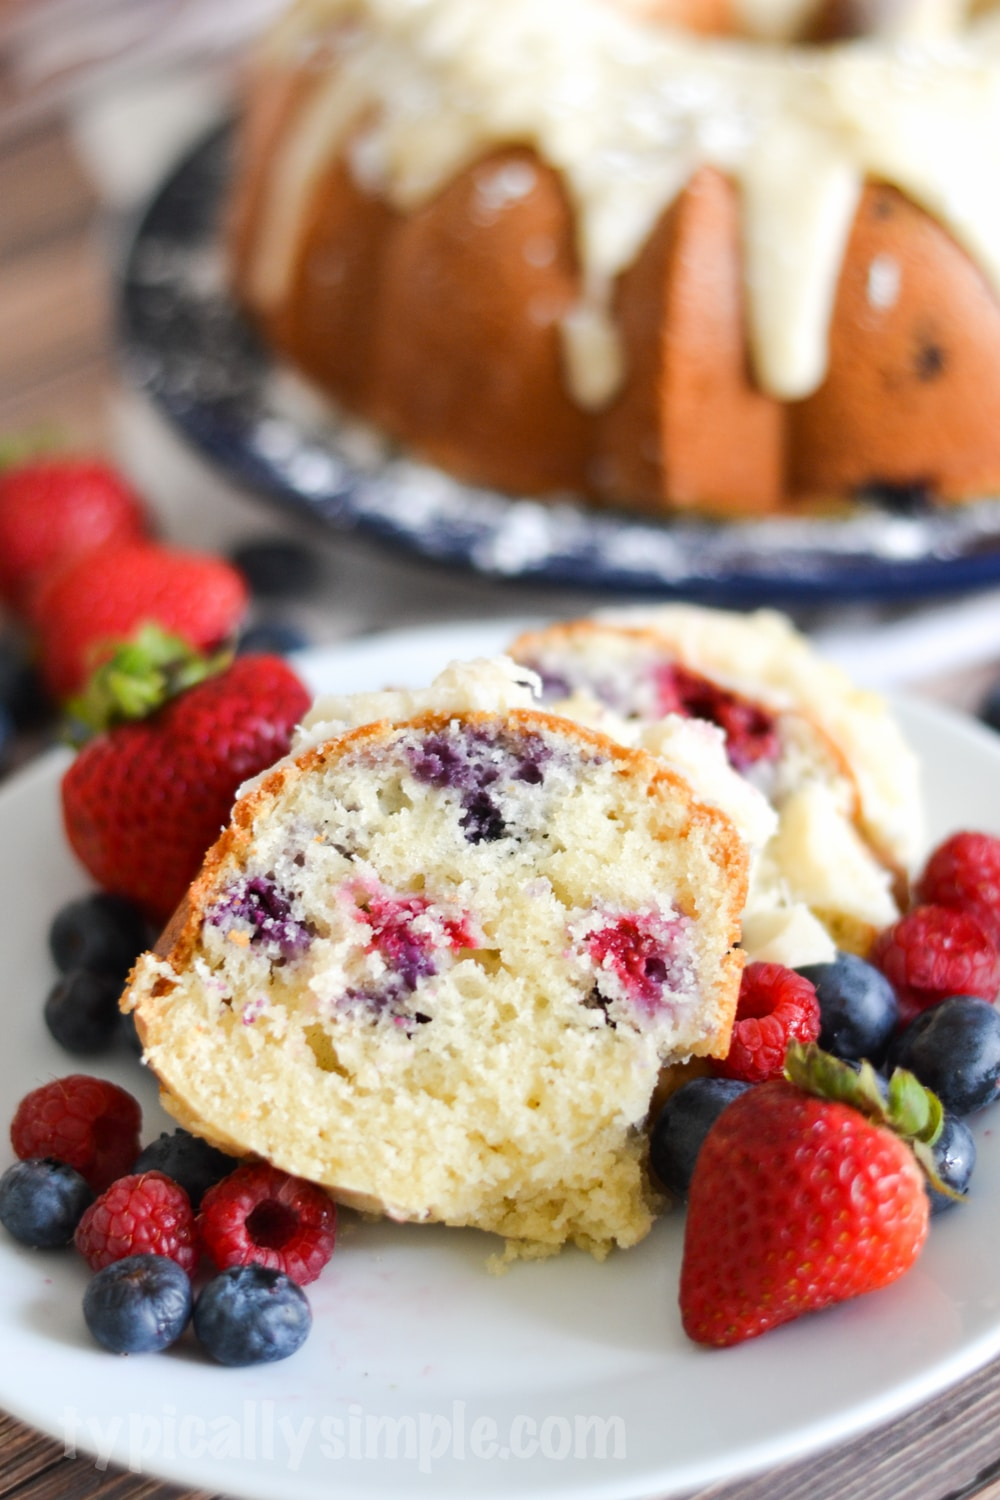 A decadent berry bundt cake recipe that is quite simple to make using fresh blueberries and raspberries. A delicious treat to serve with after dinner coffee!